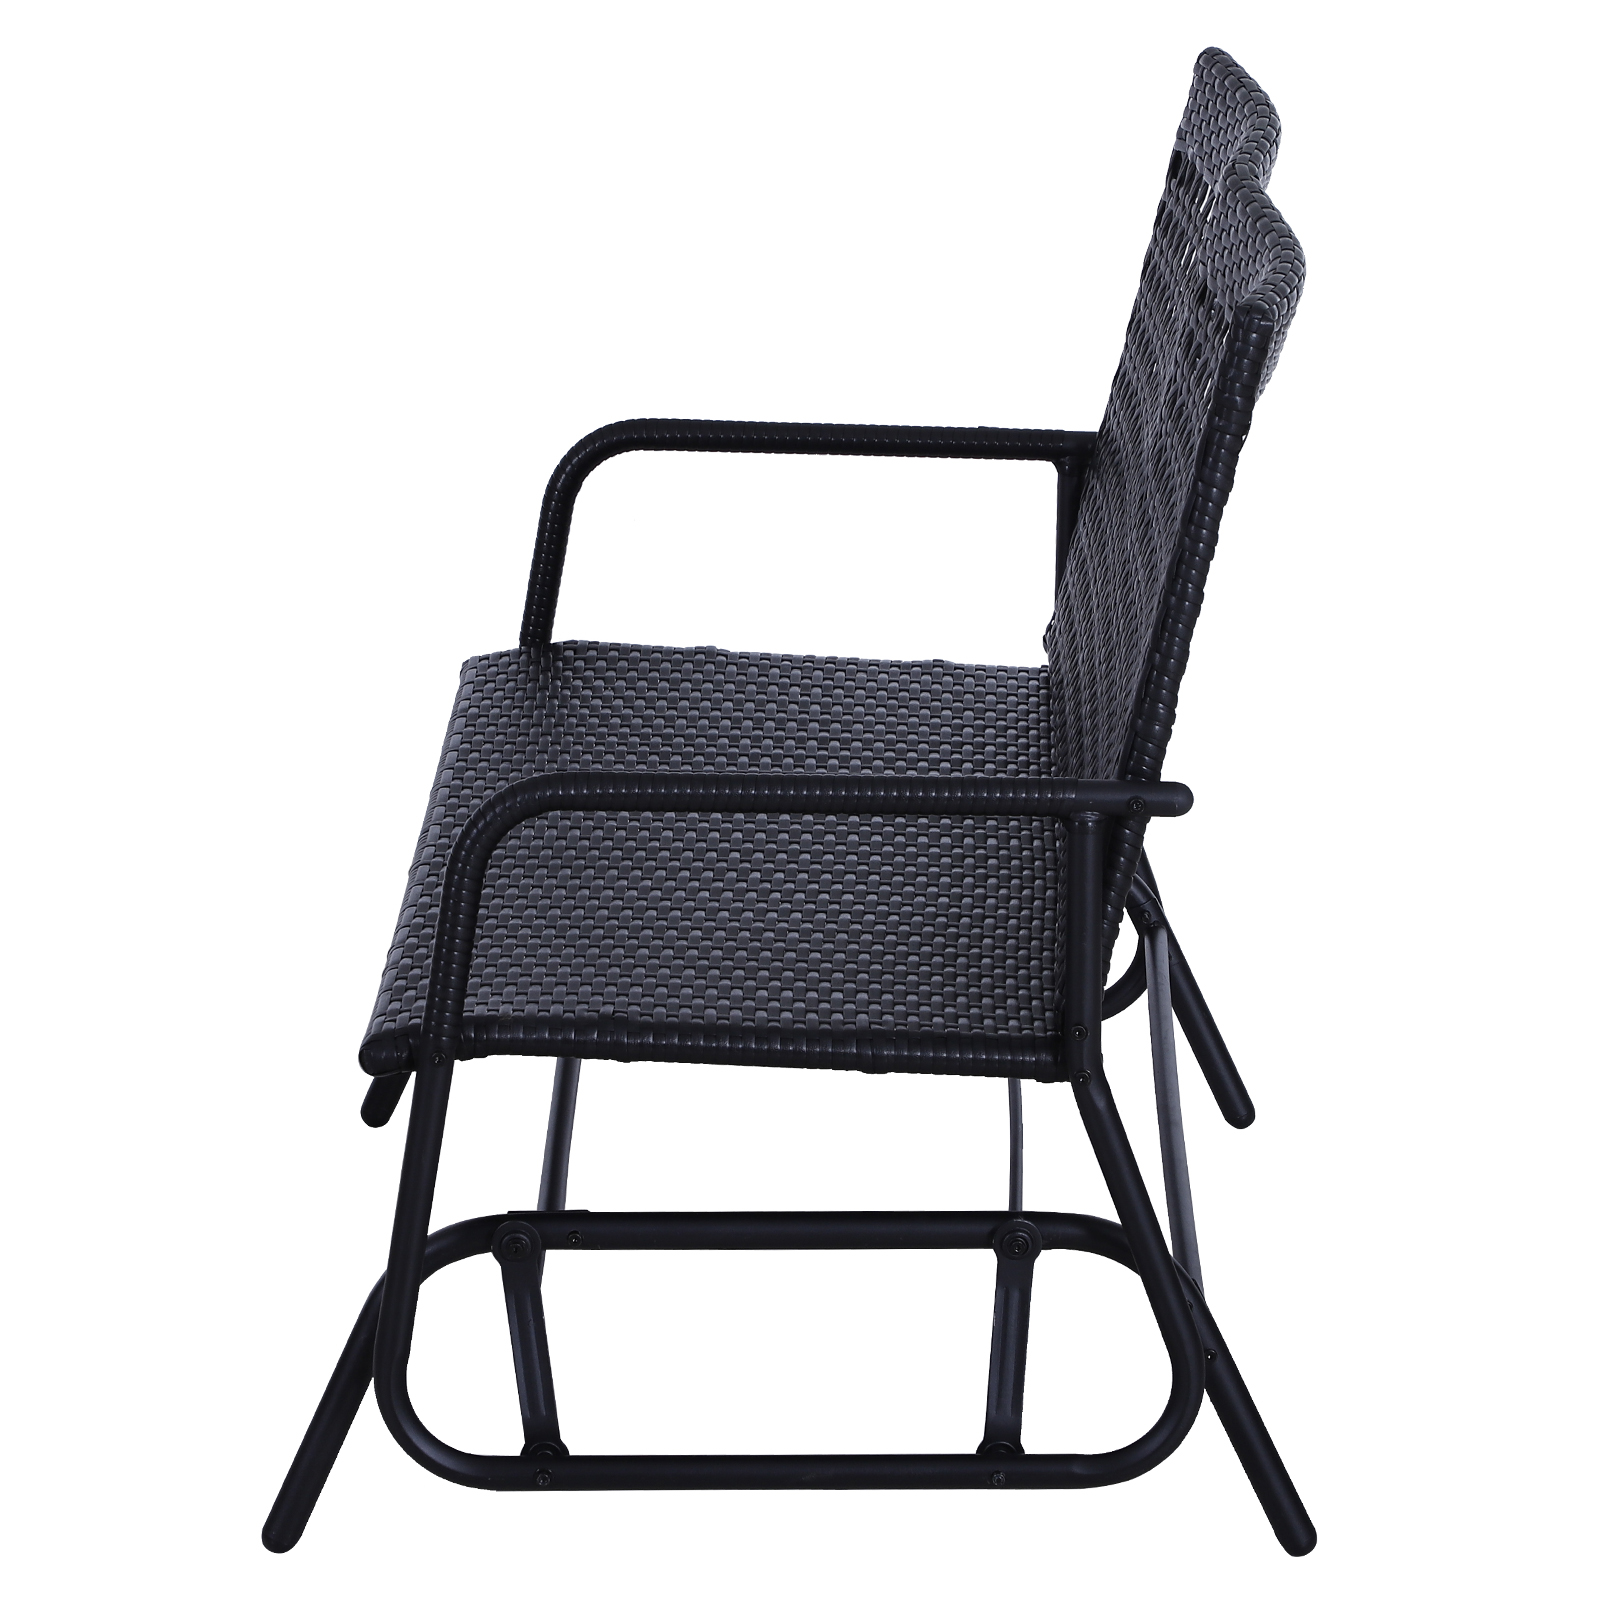 Outsunny-47x3x35inch-Garden-Bench-Wicker-Glider-Swing-Chair-Black thumbnail 3